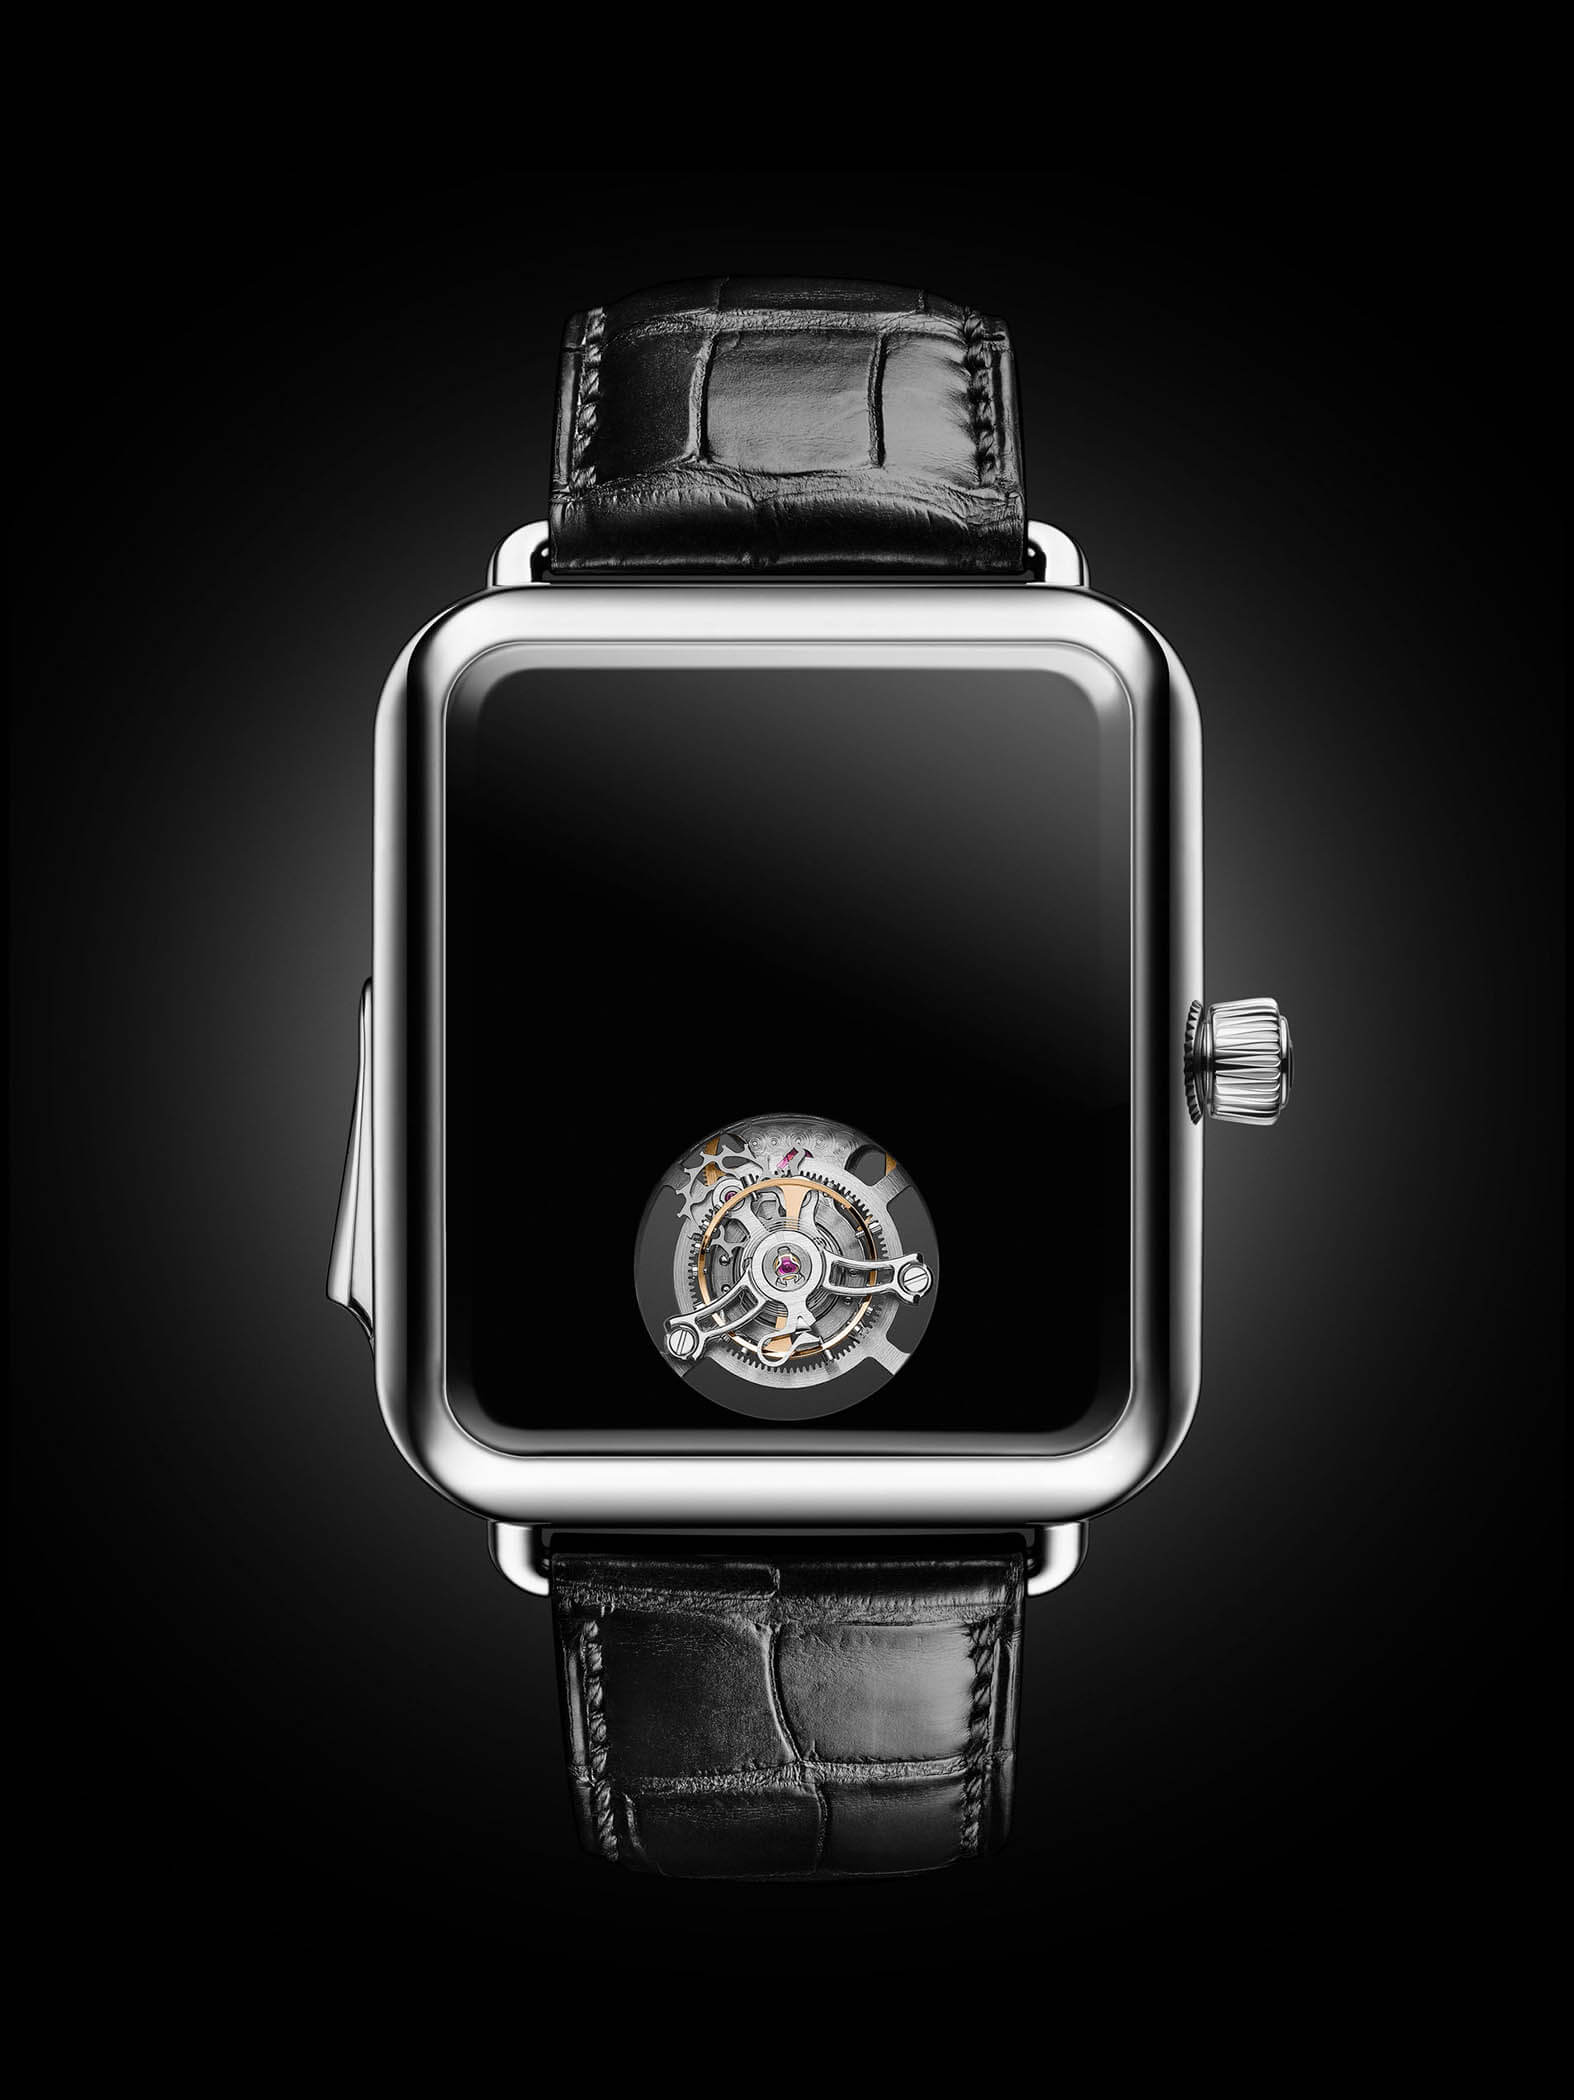 Swiss Alp Watch Concept Black Glow